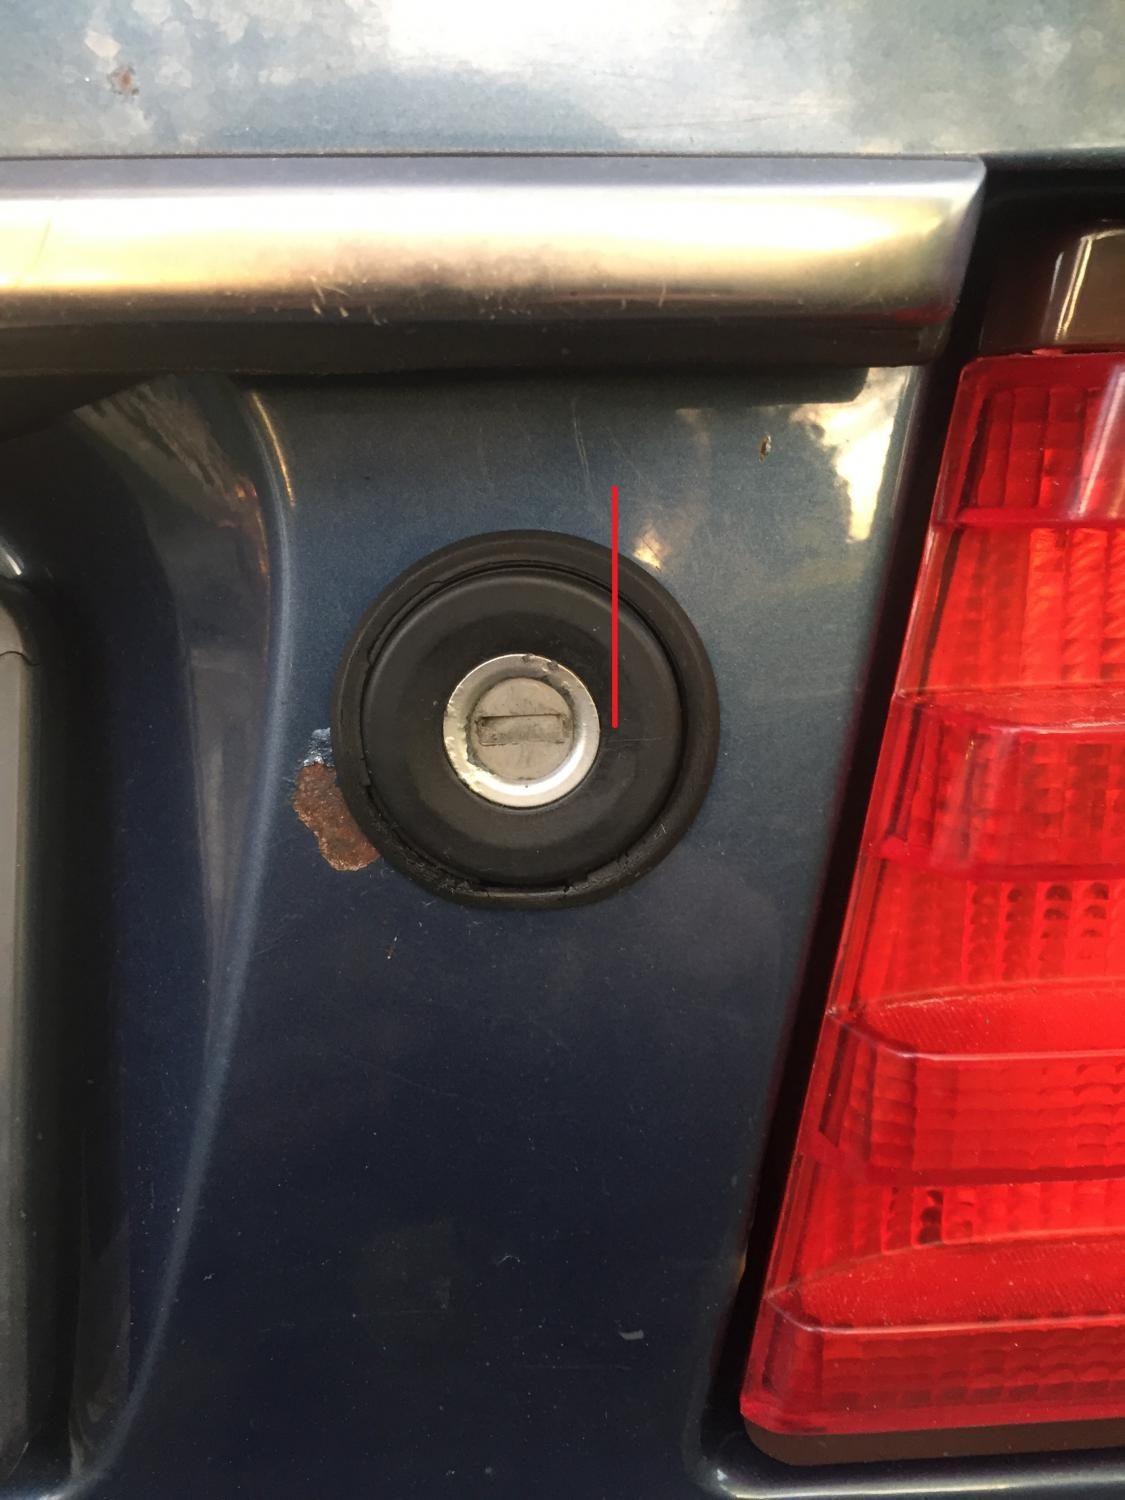 How To Open Car Trunk Without Key : trunk, without, 'Locked, Trunk, Without, Damage, PeachParts, Mercedes-Benz, Forum